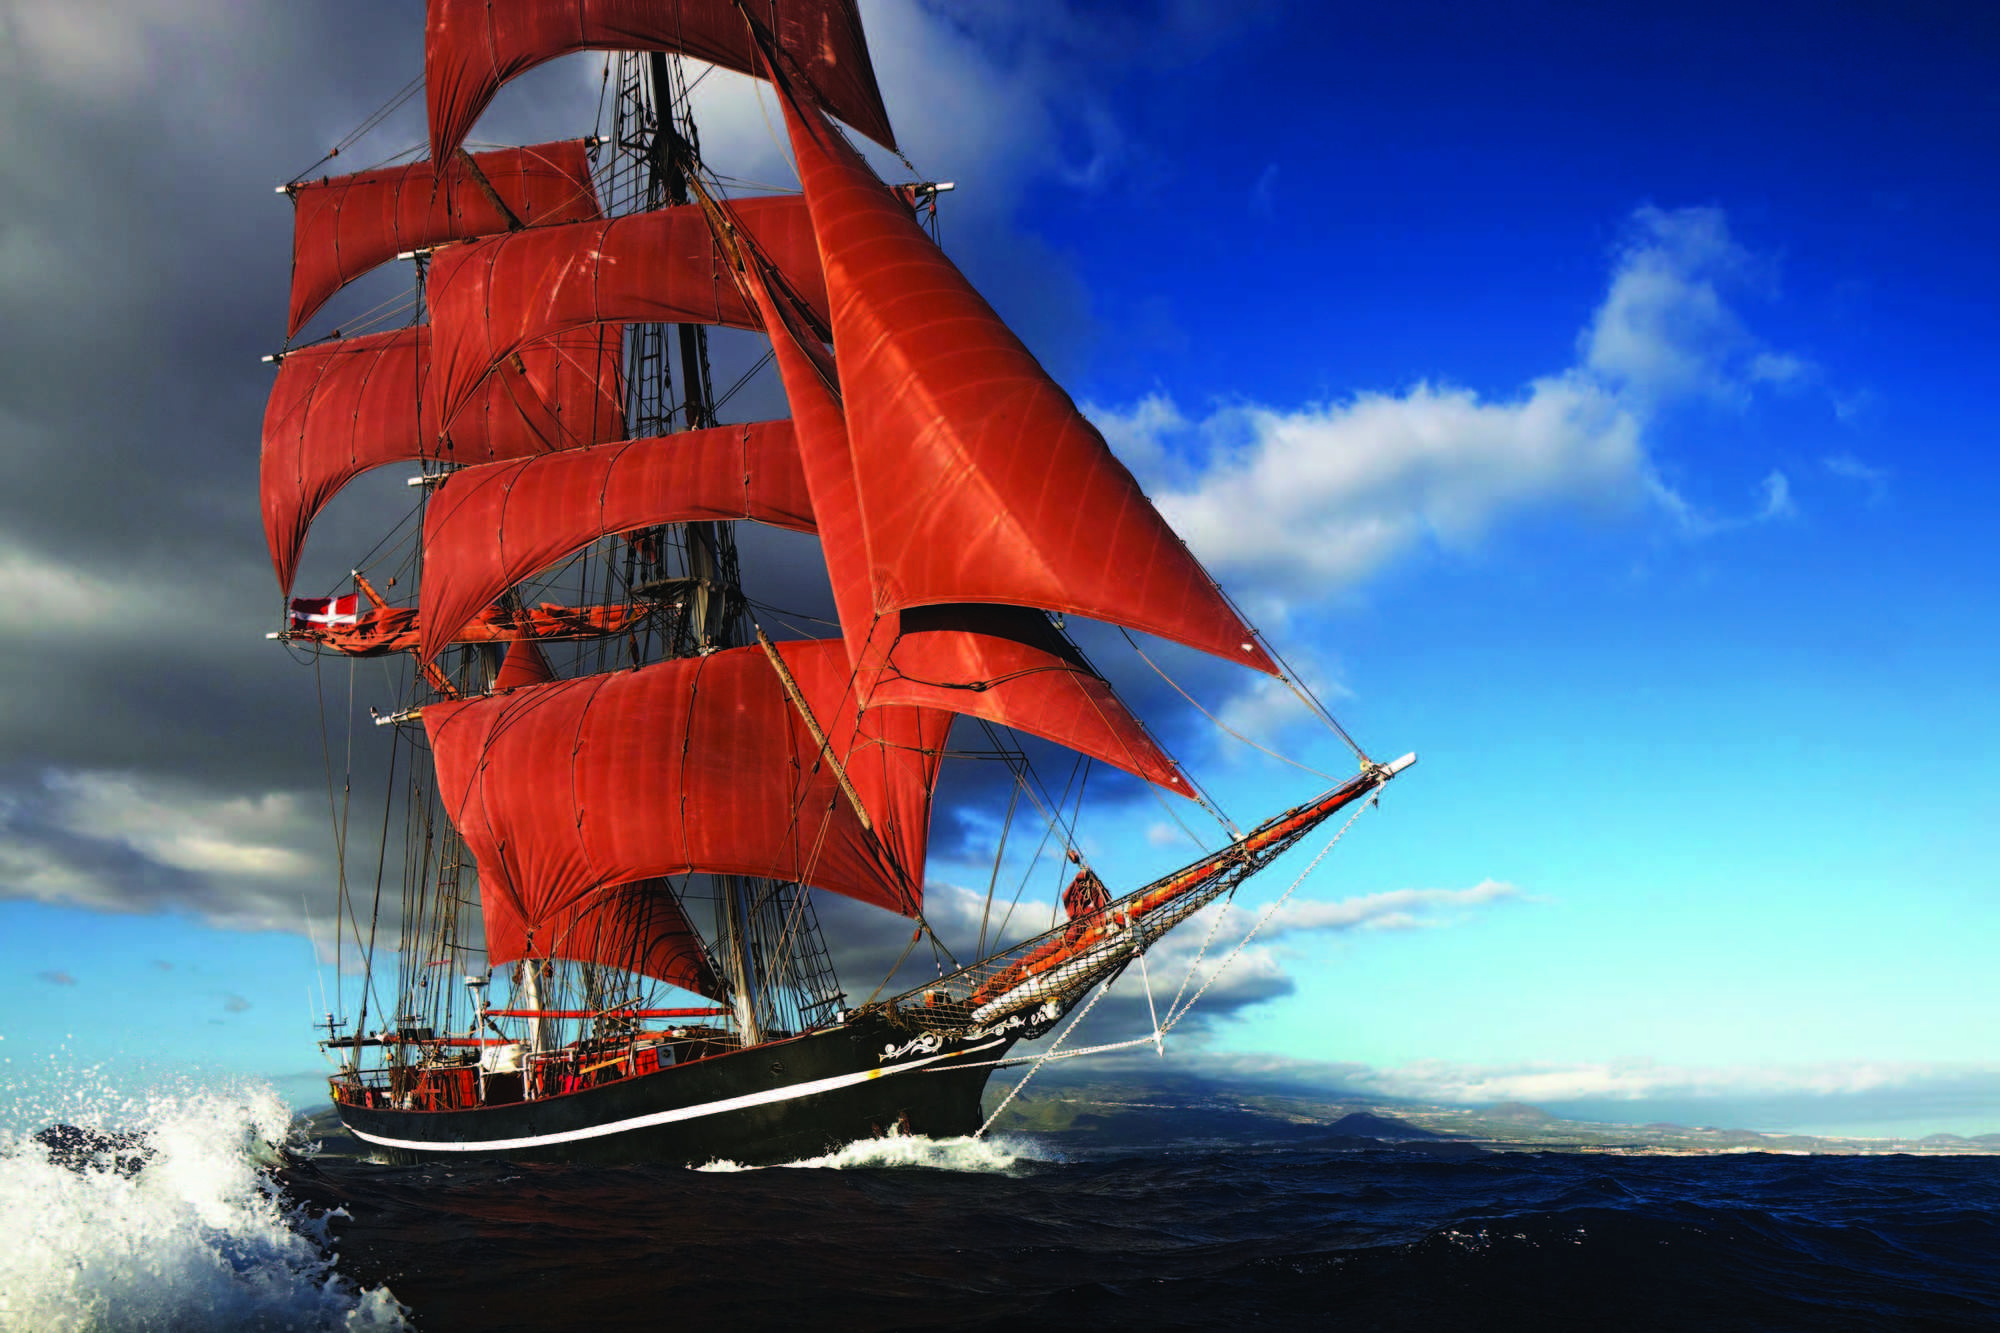 http://wewinelovers.wehomeowners.com/wp-content/uploads/2016/07/Tall-Ship.jpg